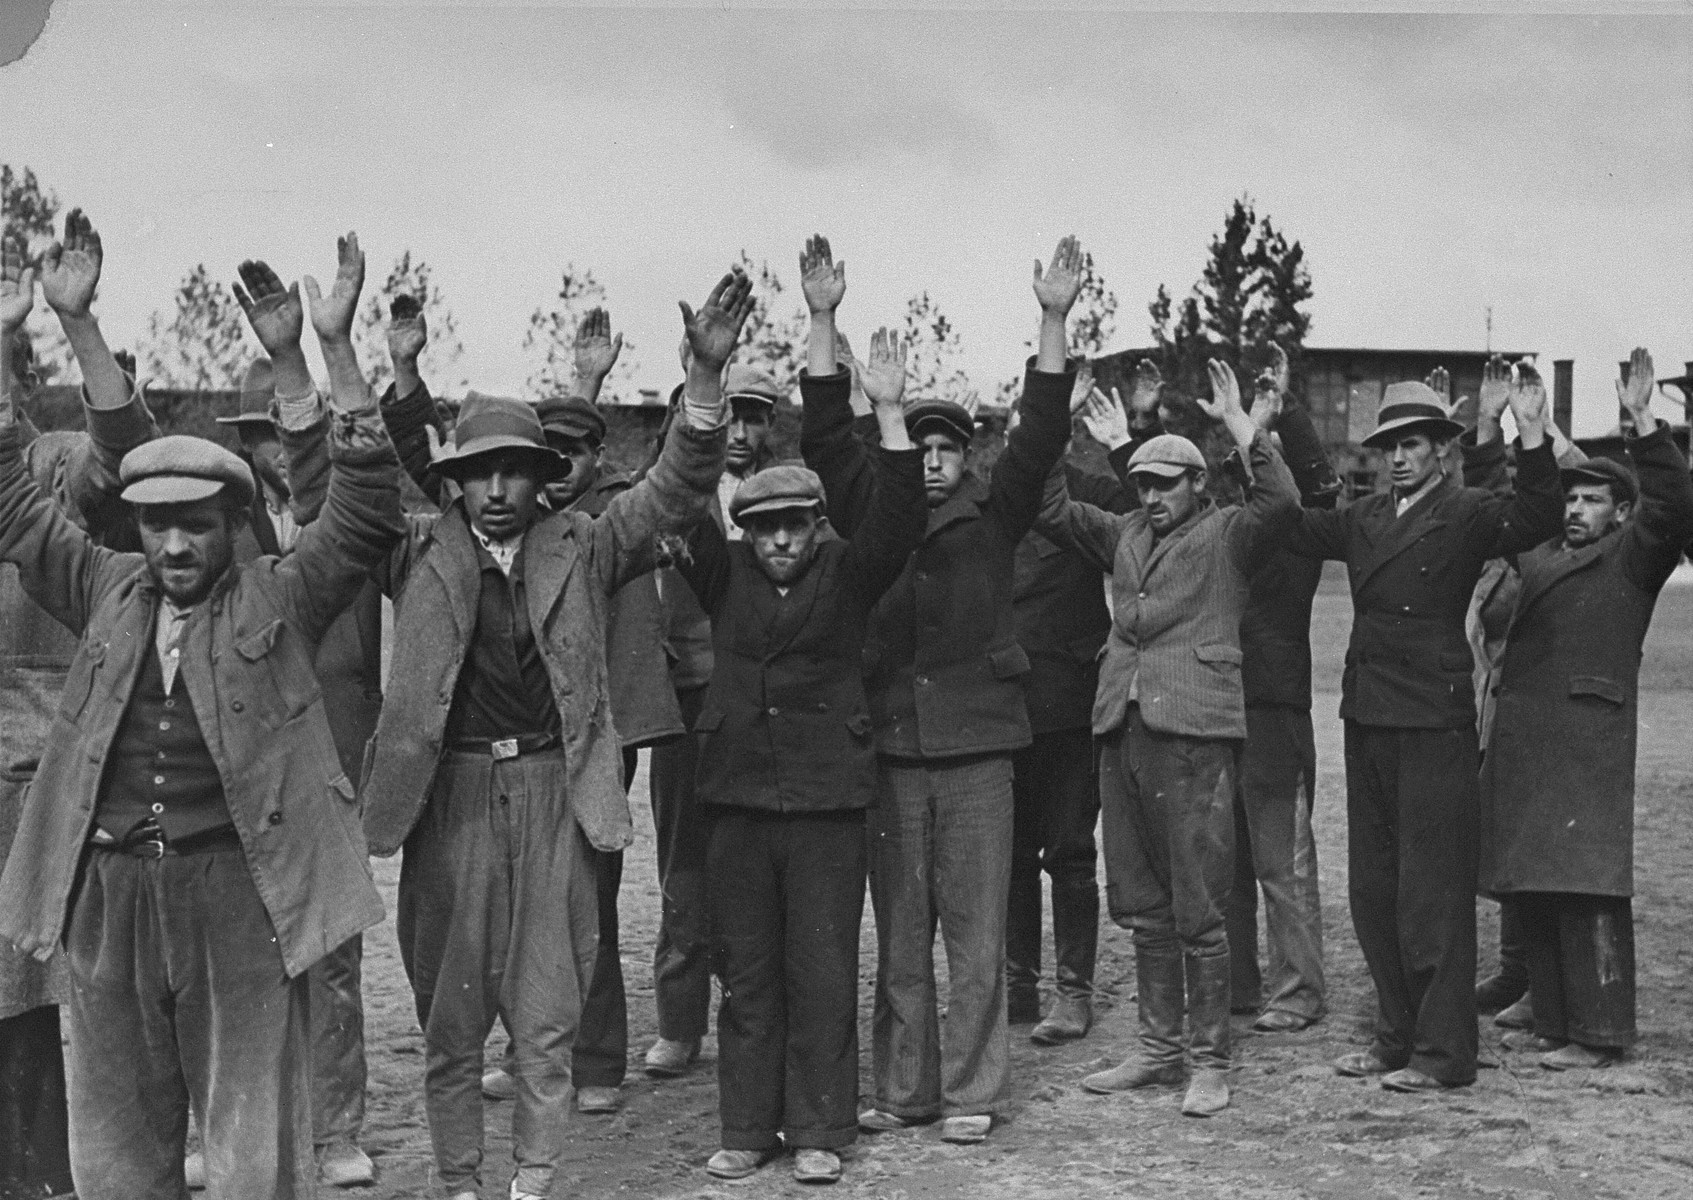 Polish and Jewish inhabitants of Aleksandrow Kujawski hold their arms in the air after their arrest by German soldiers during the conquest of Poland.    These men may have been arrested as hostages to deter civilian attacks on German soldiers.  Should such an attack have occurred in the area, these men would have been shot.  This was standard operating procedure for the German army from the very first days of the war.